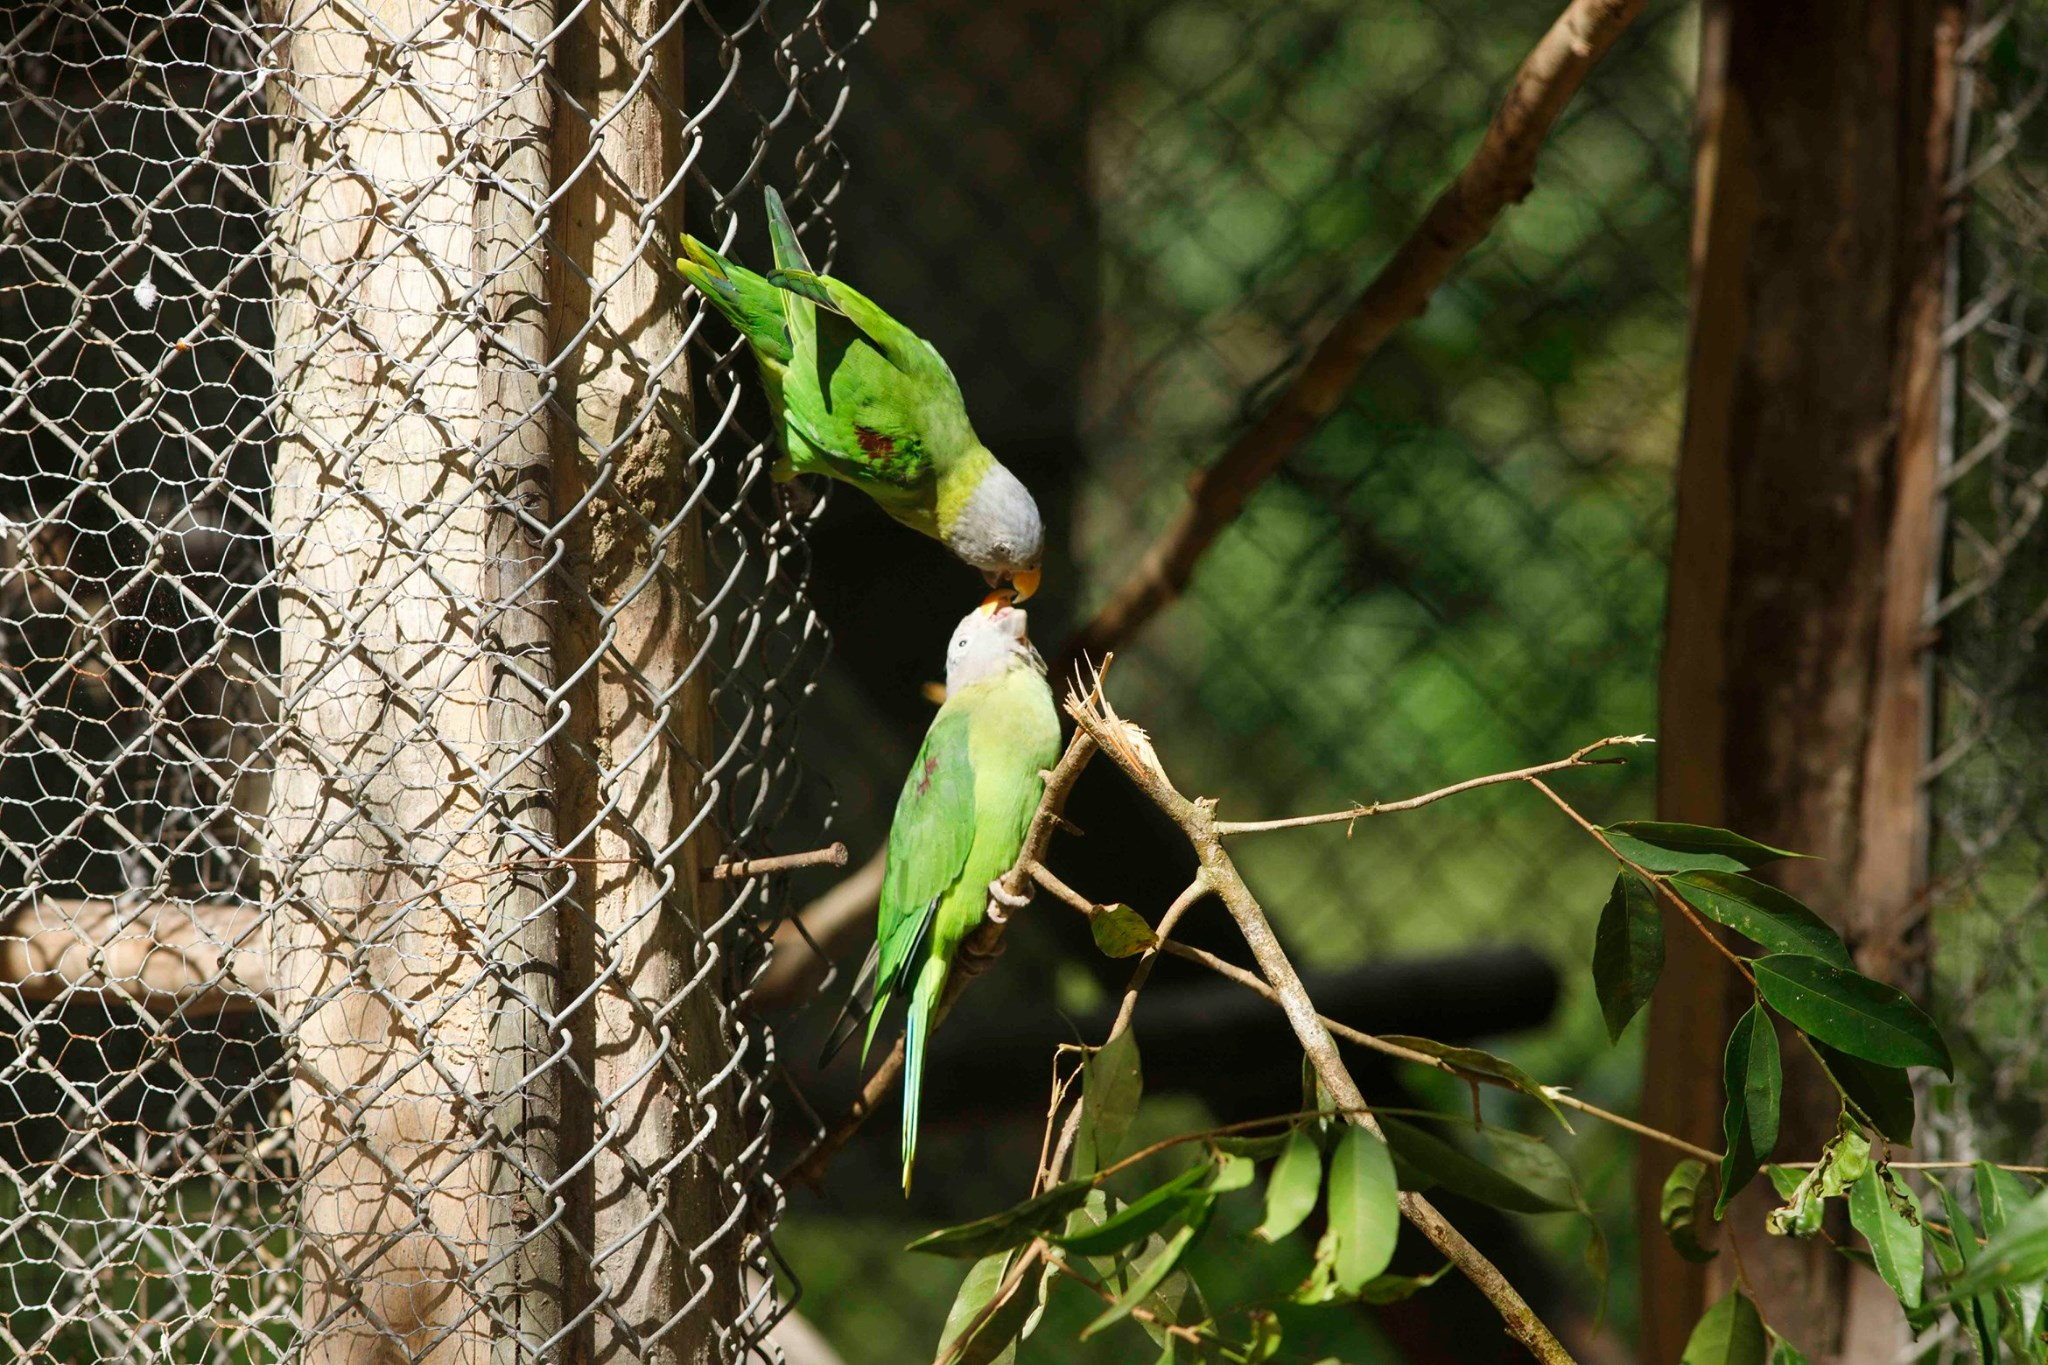 From wildlife traders to the wild: the journey of two parakeets rescued from the illegal pet trade